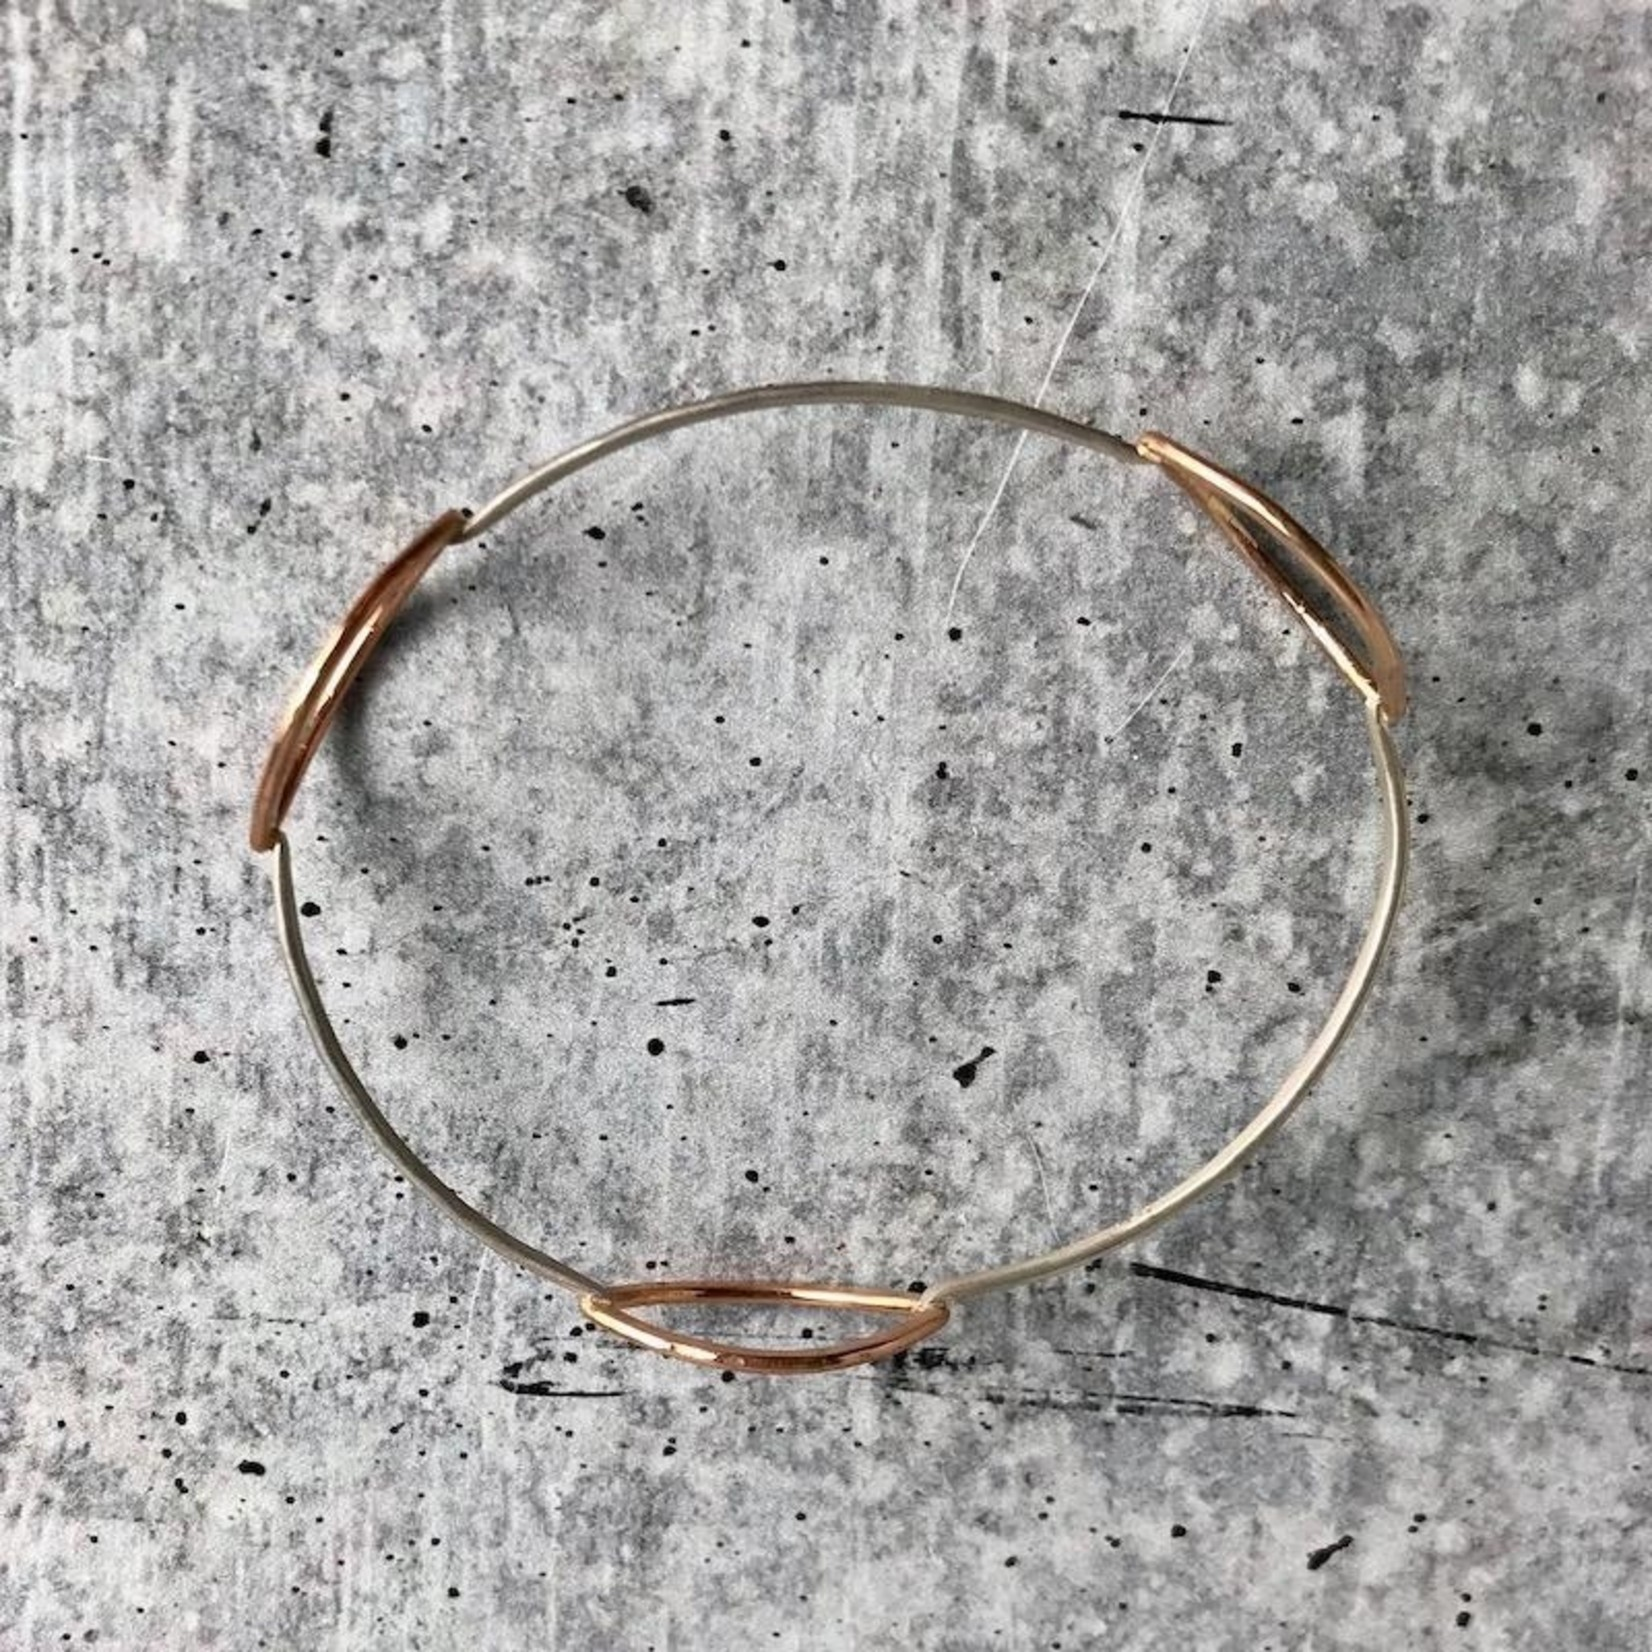 Handmade 14kt Goldfill Leaf shape in the round sterling silver bangle